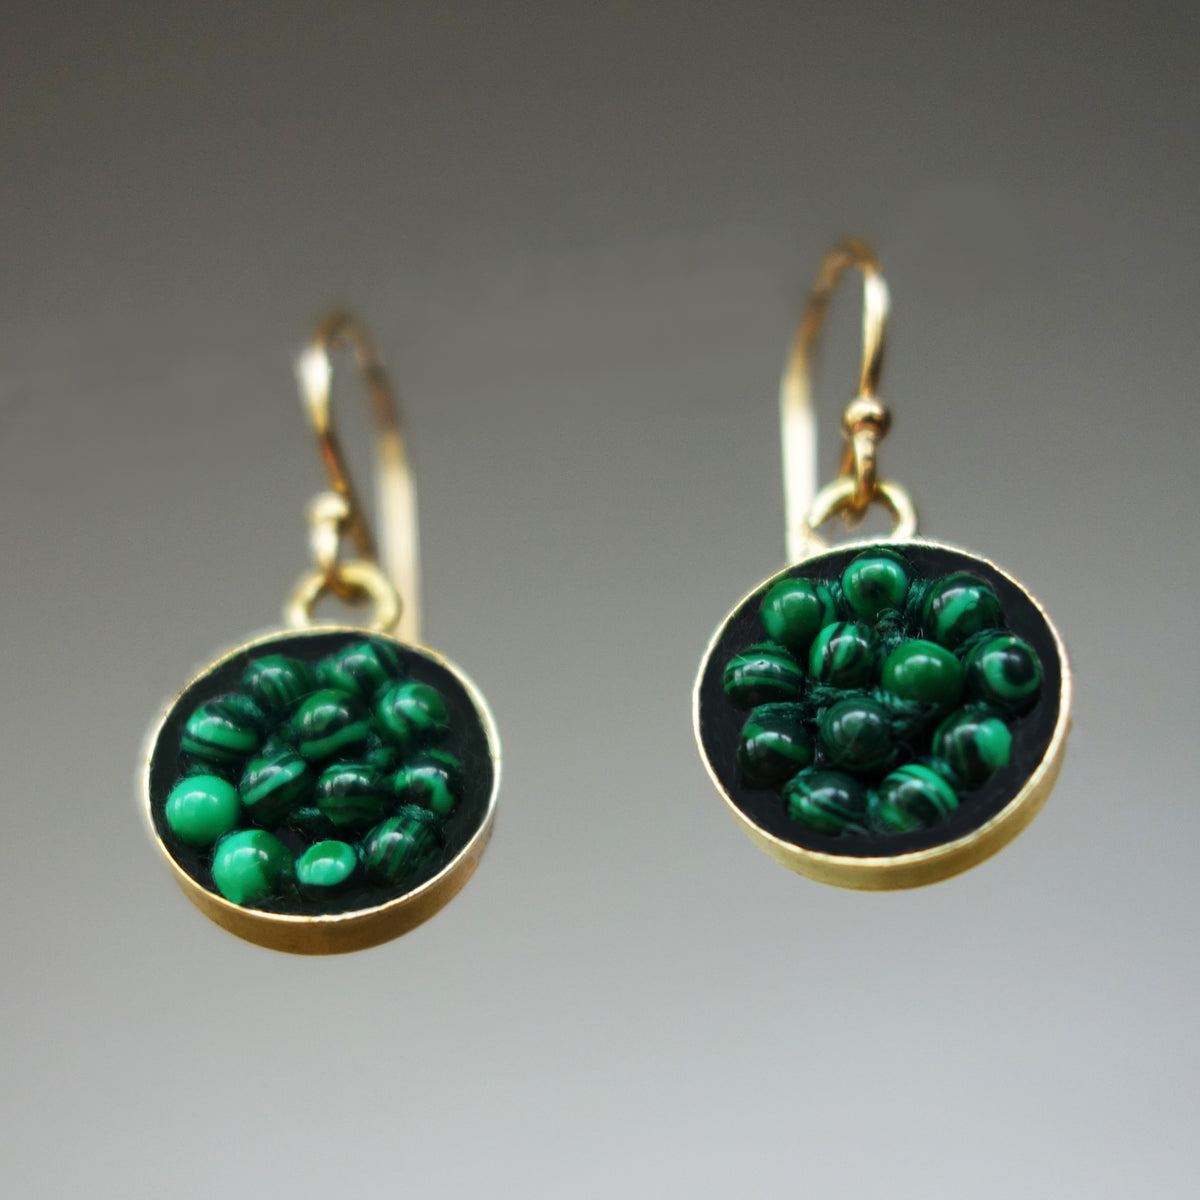 Mosaic earrings made any way you desire, darling